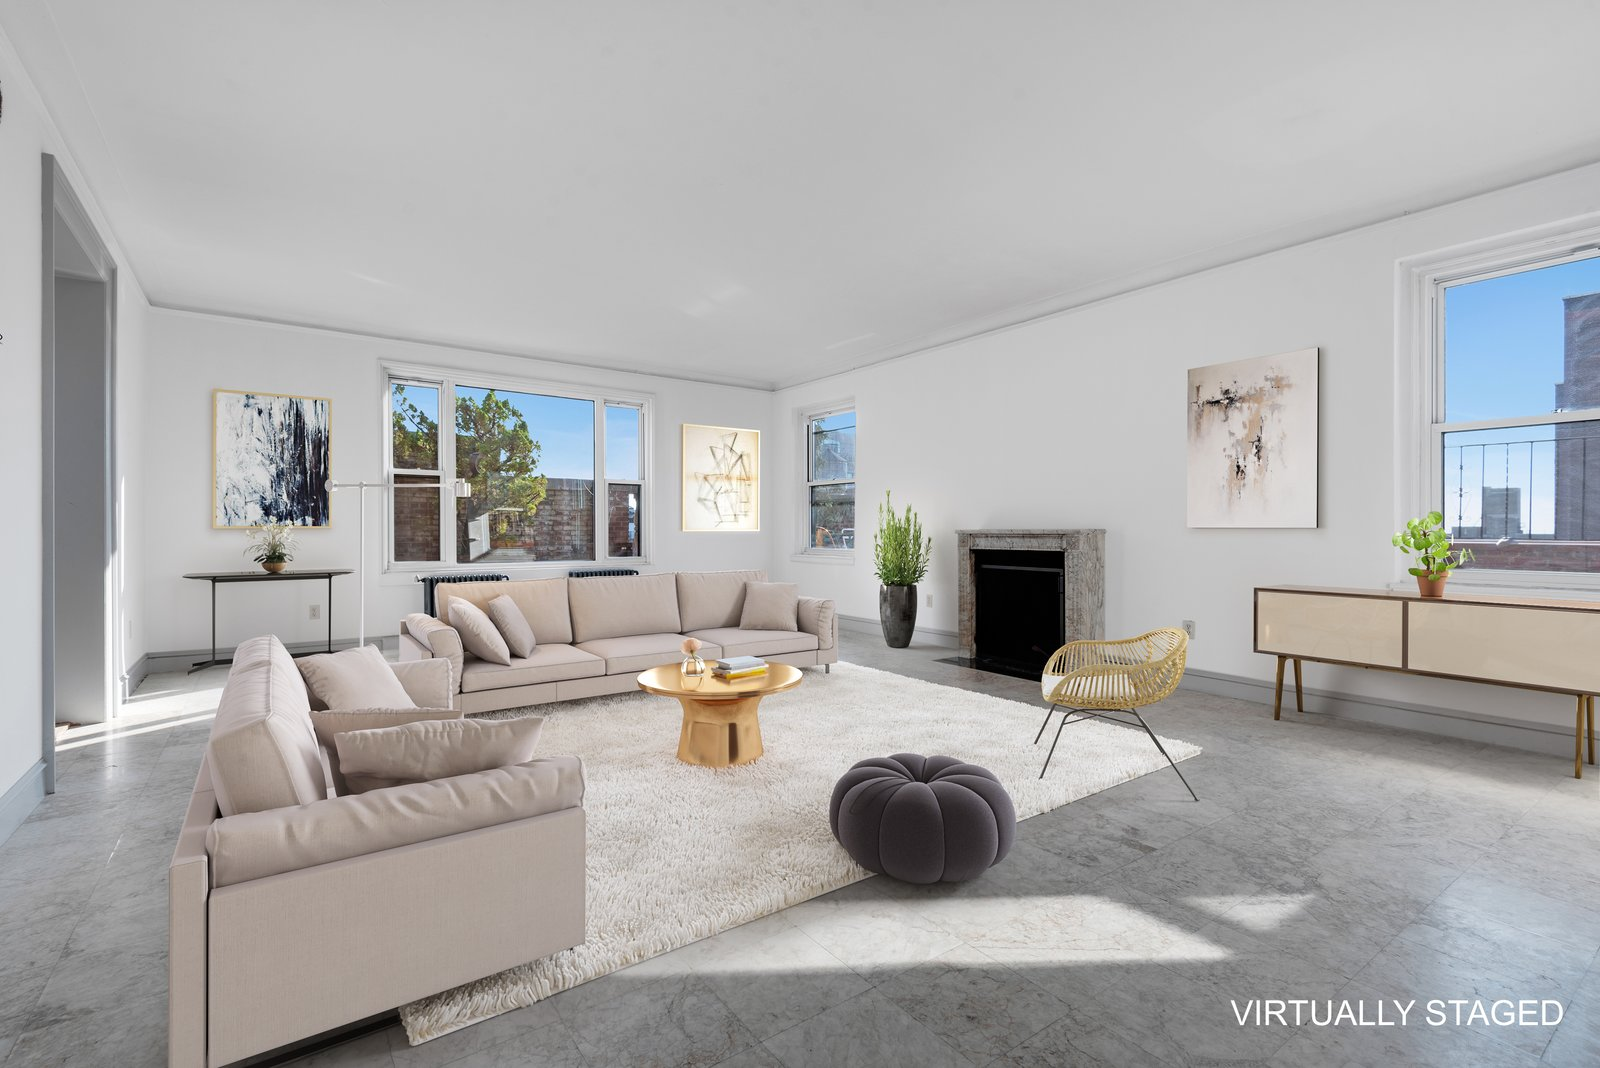 Living Room, Sofa, Standard Layout Fireplace, Chair, Coffee Tables, End Tables, Ottomans, Console Tables, Concrete Floor, and Rug Floor The light-filled living room.   Photo 6 of 12 in Björk Puts Her Brooklyn Heights Penthouse on the Market For $9M